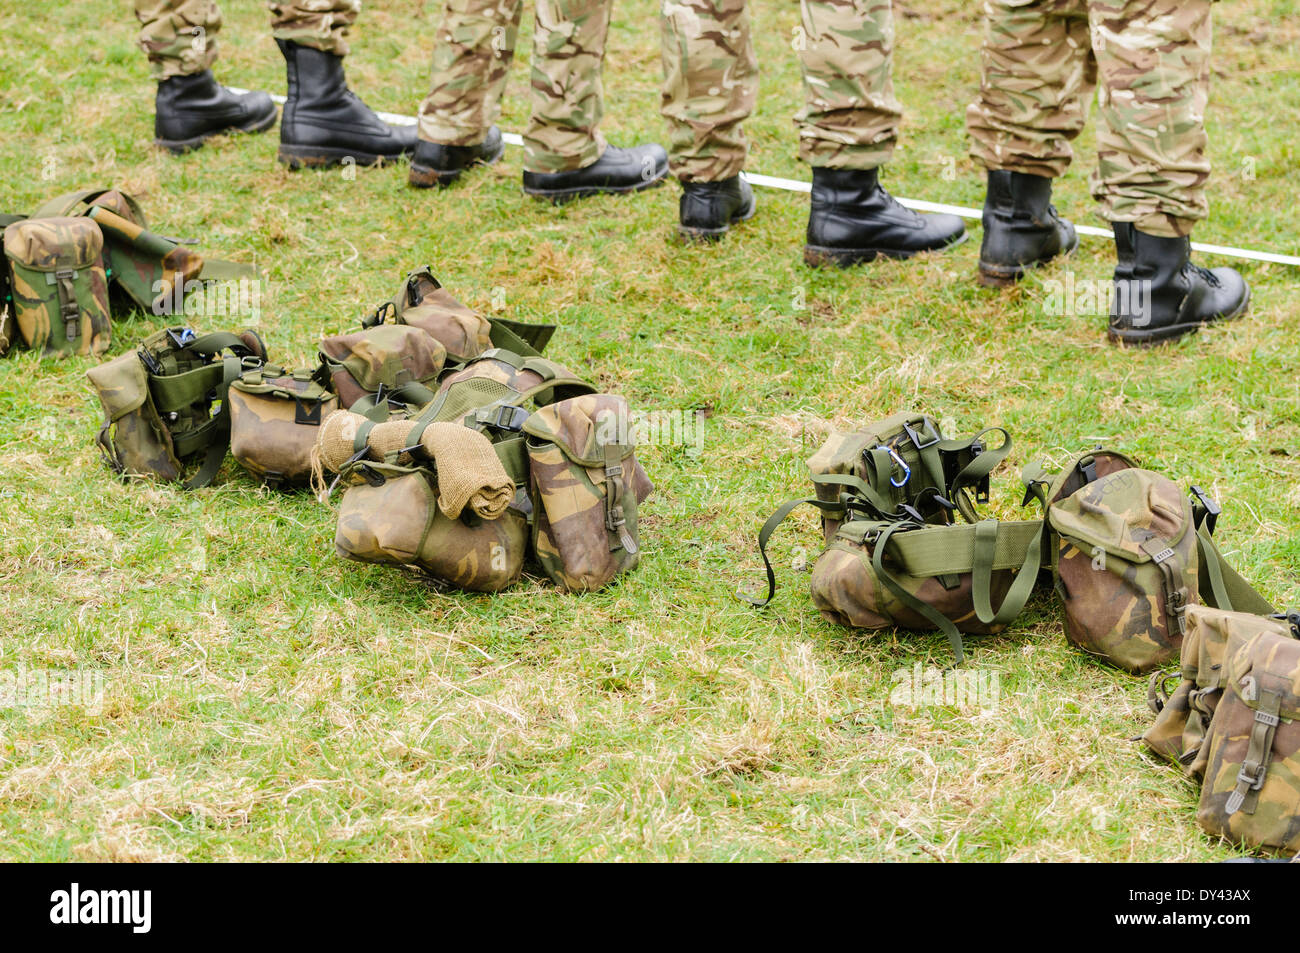 Soldiers drop their kit belts as they stand in a line - Stock Image